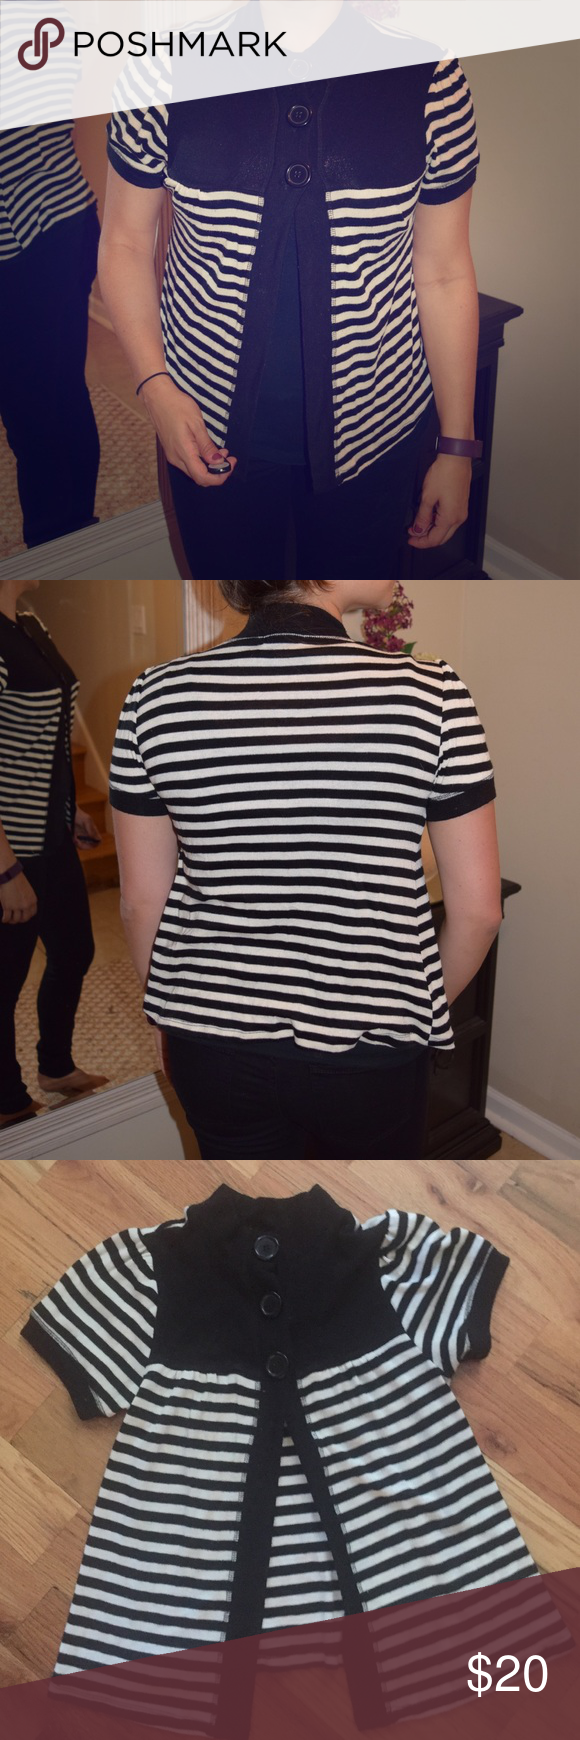 Black & White Striper Short Sleeved Cardigan 3 Buttons up top. Good condition! Great for casual business wear. Eyeshadow Tops Tees - Short Sleeve